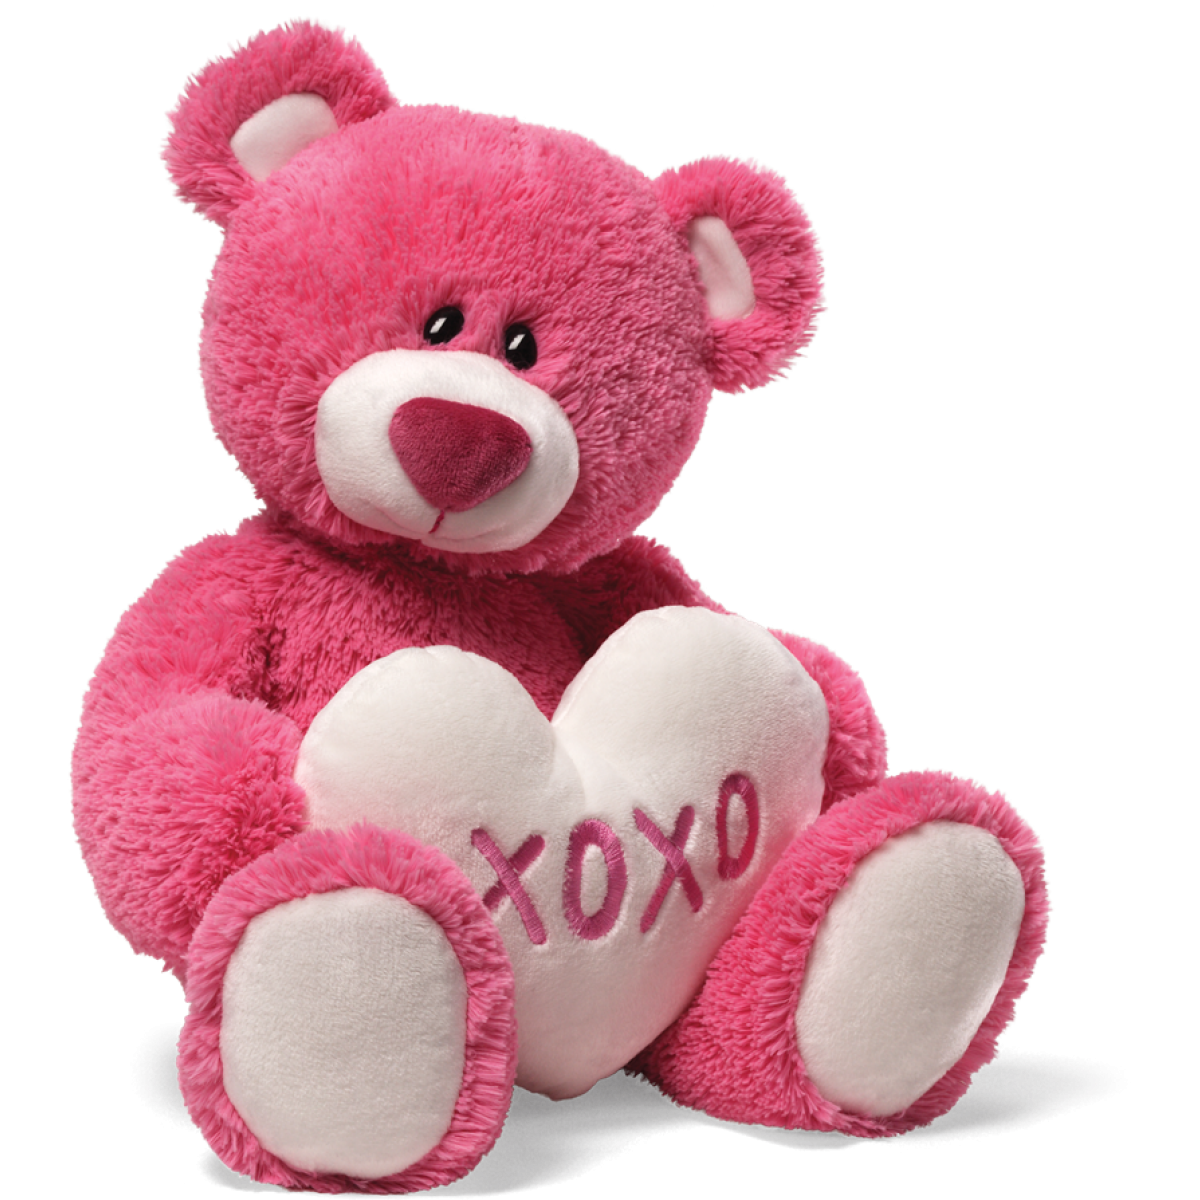 Png Download Free Teddy Bear Images image #28009